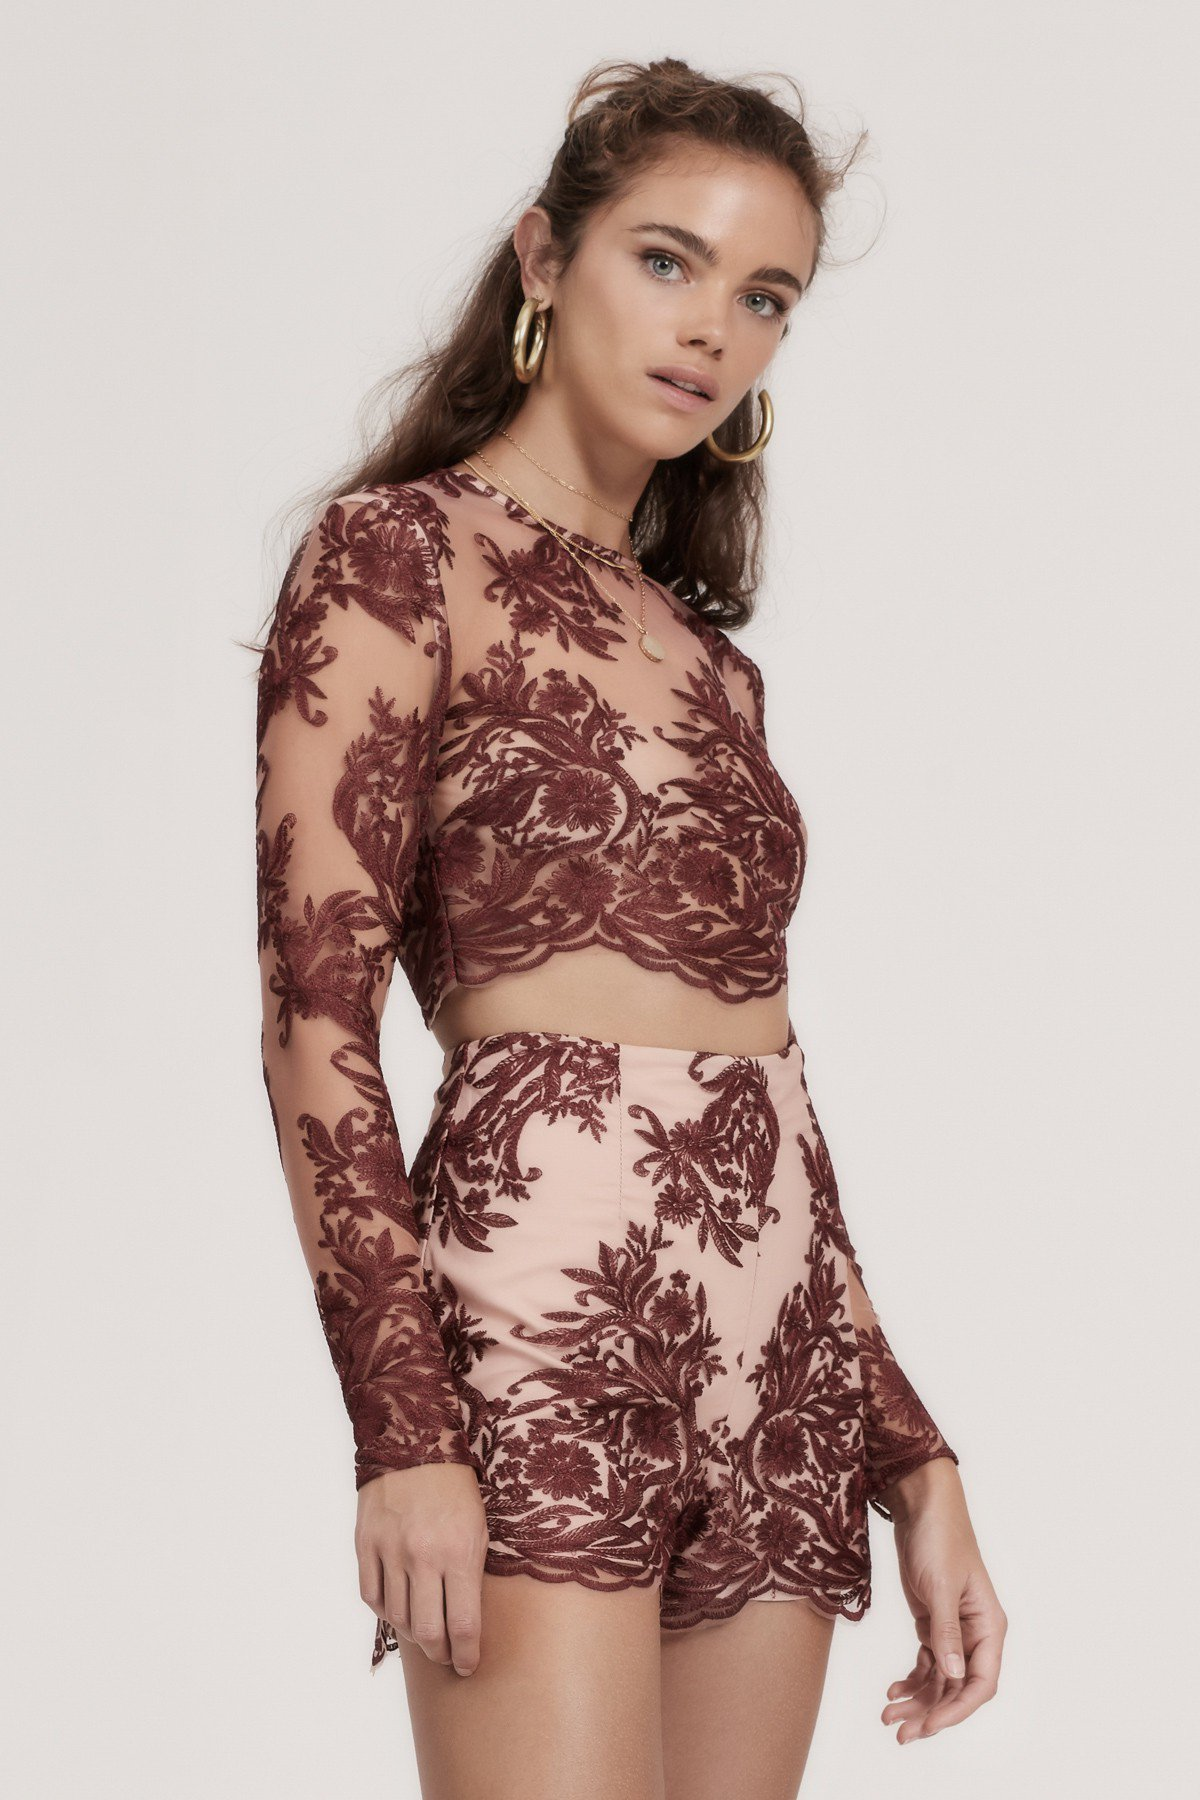 Shop  Finders Spectral Long Sleeve Top  +  Spectral Lace Short .